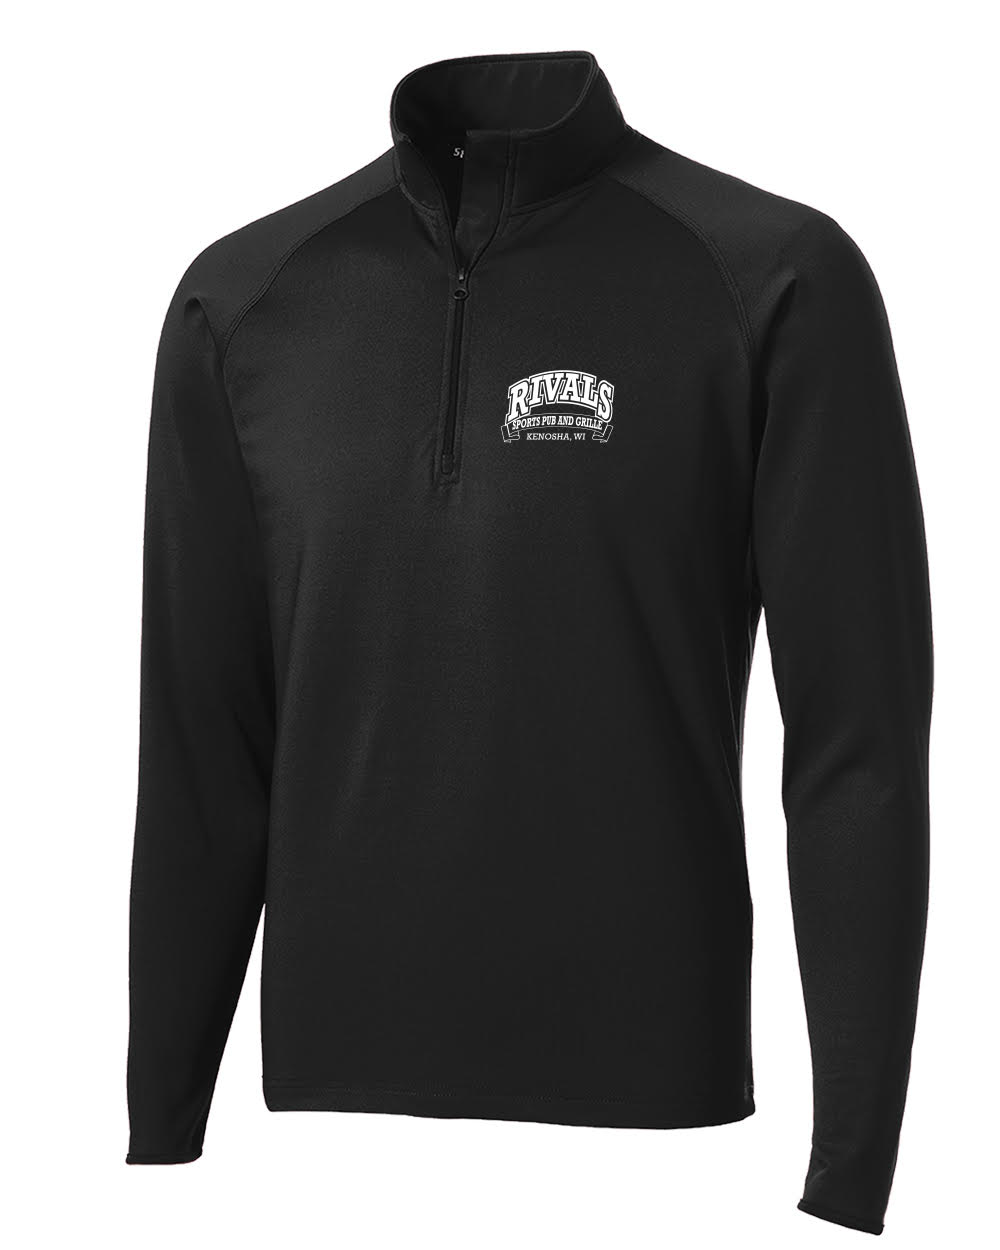 Men's Quarter Zip - $30 -